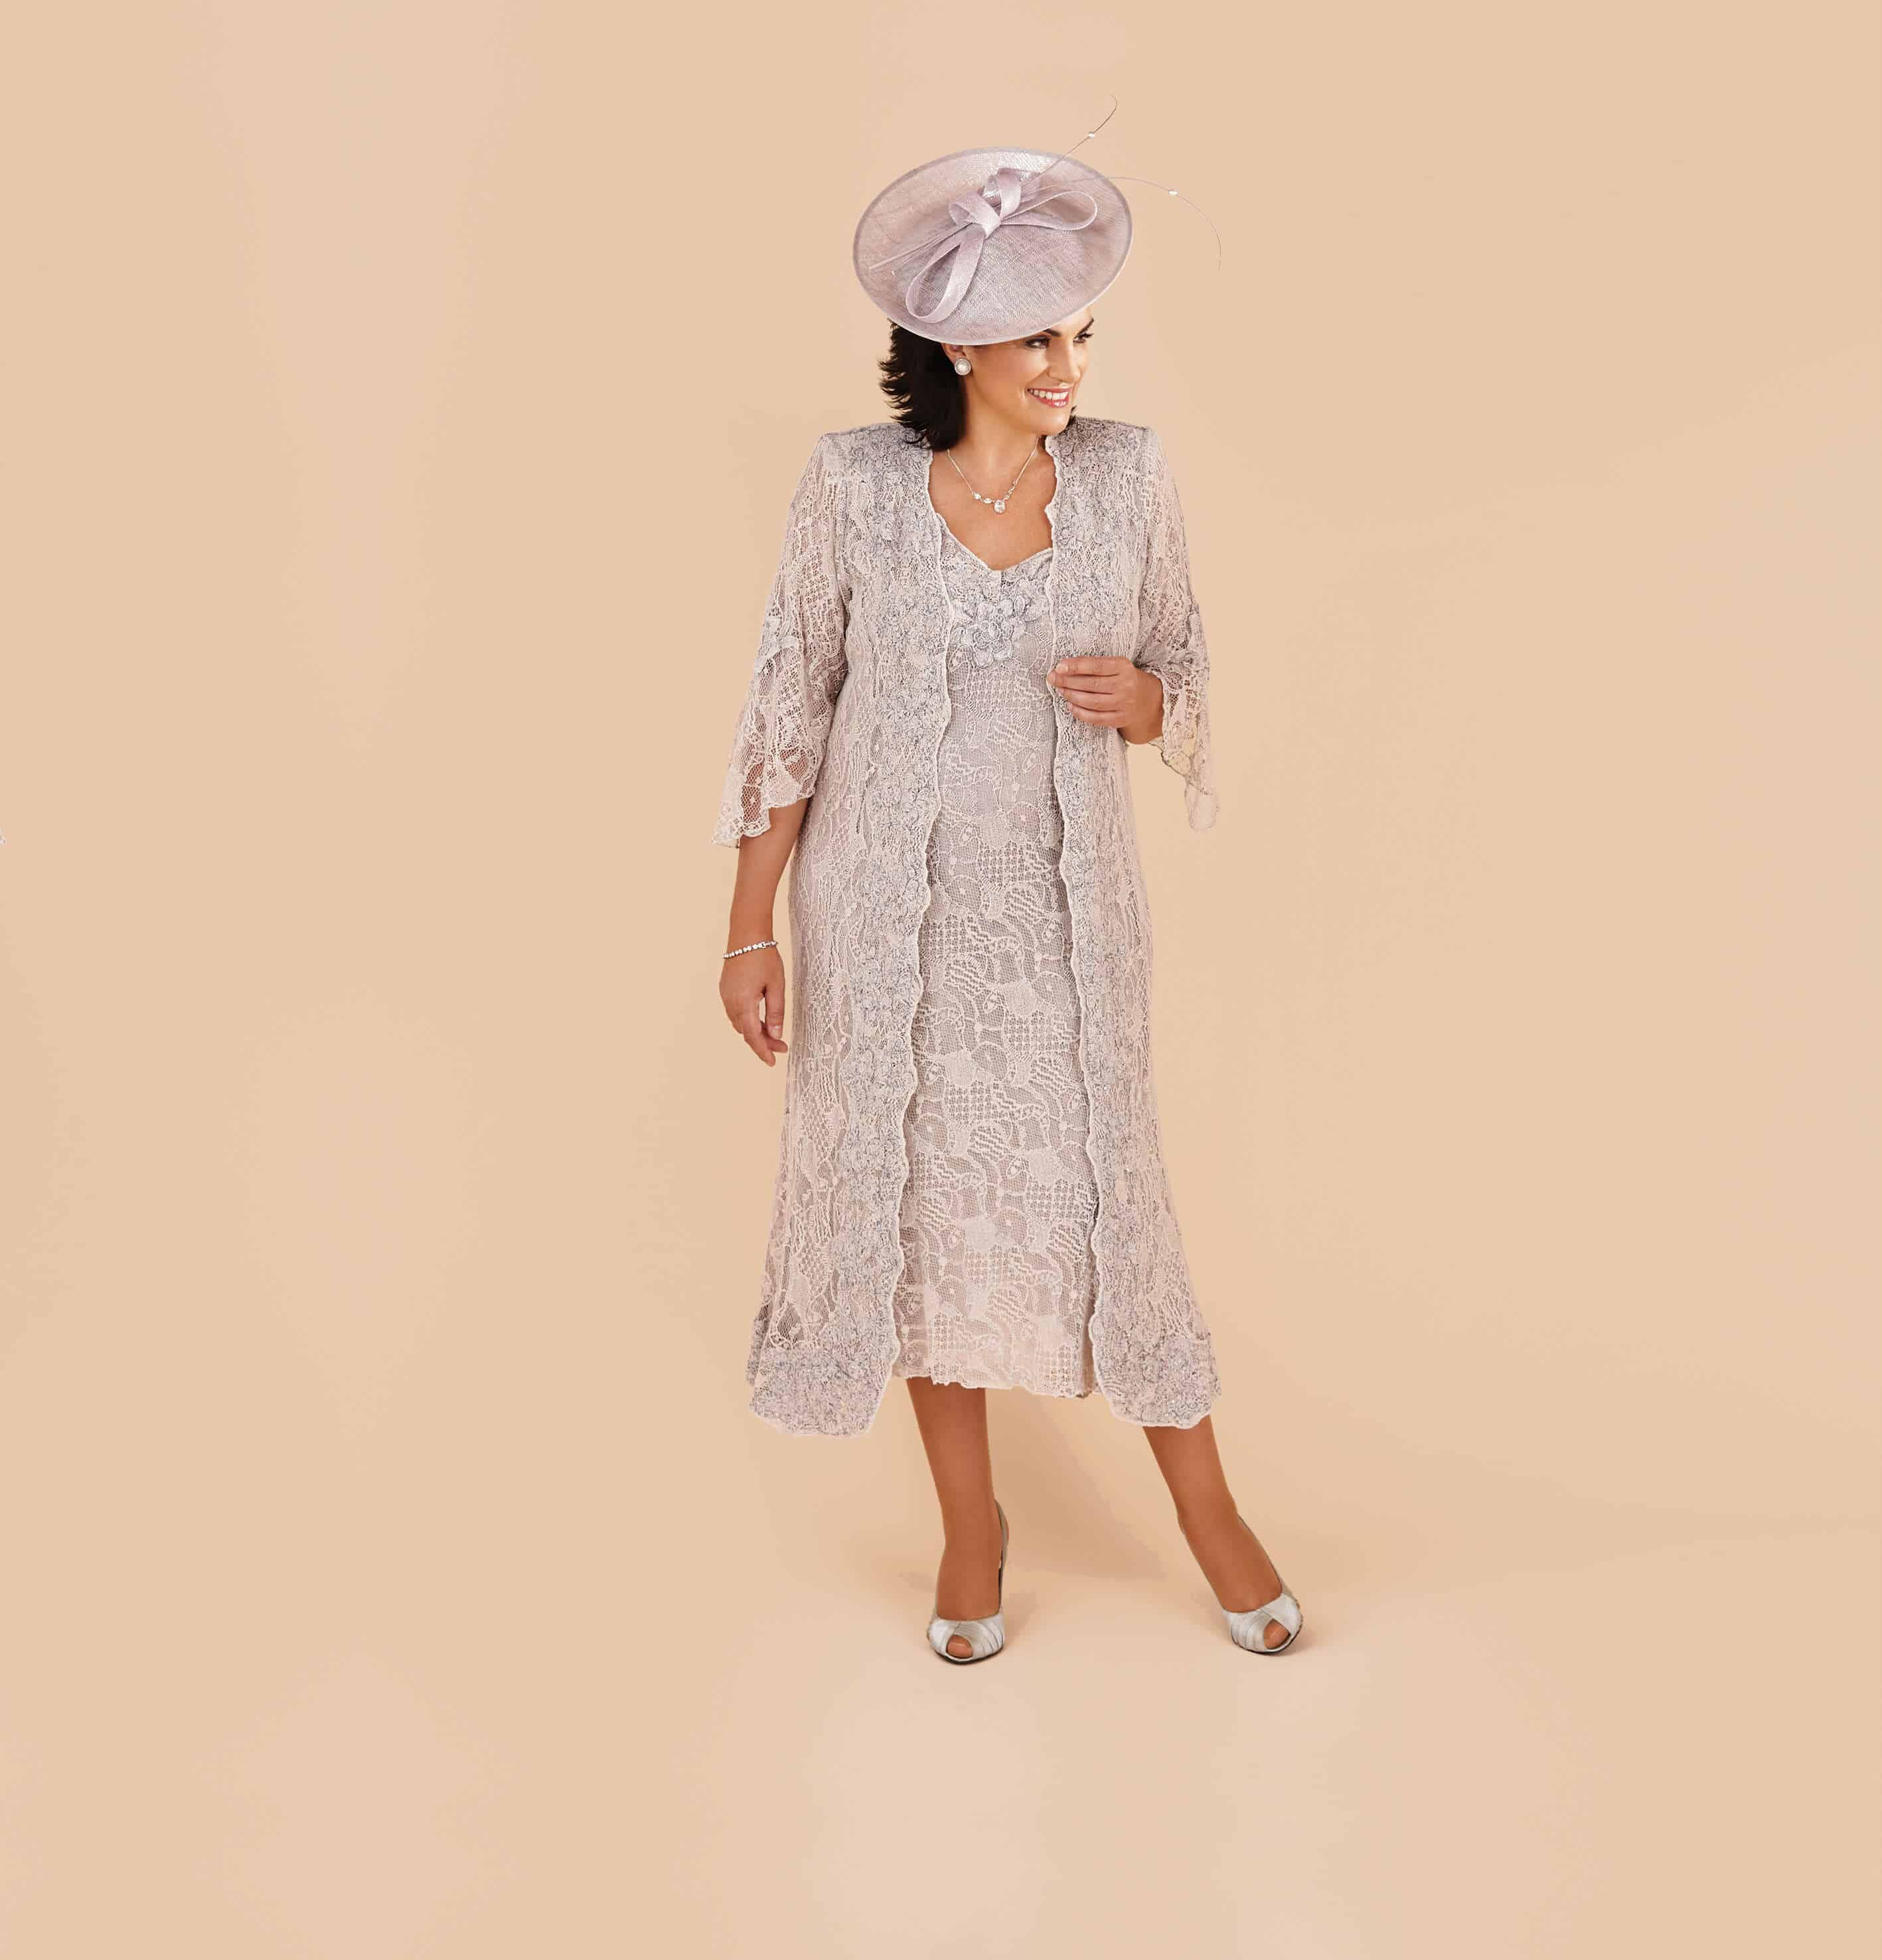 Italian fitted lace dress and long coat.